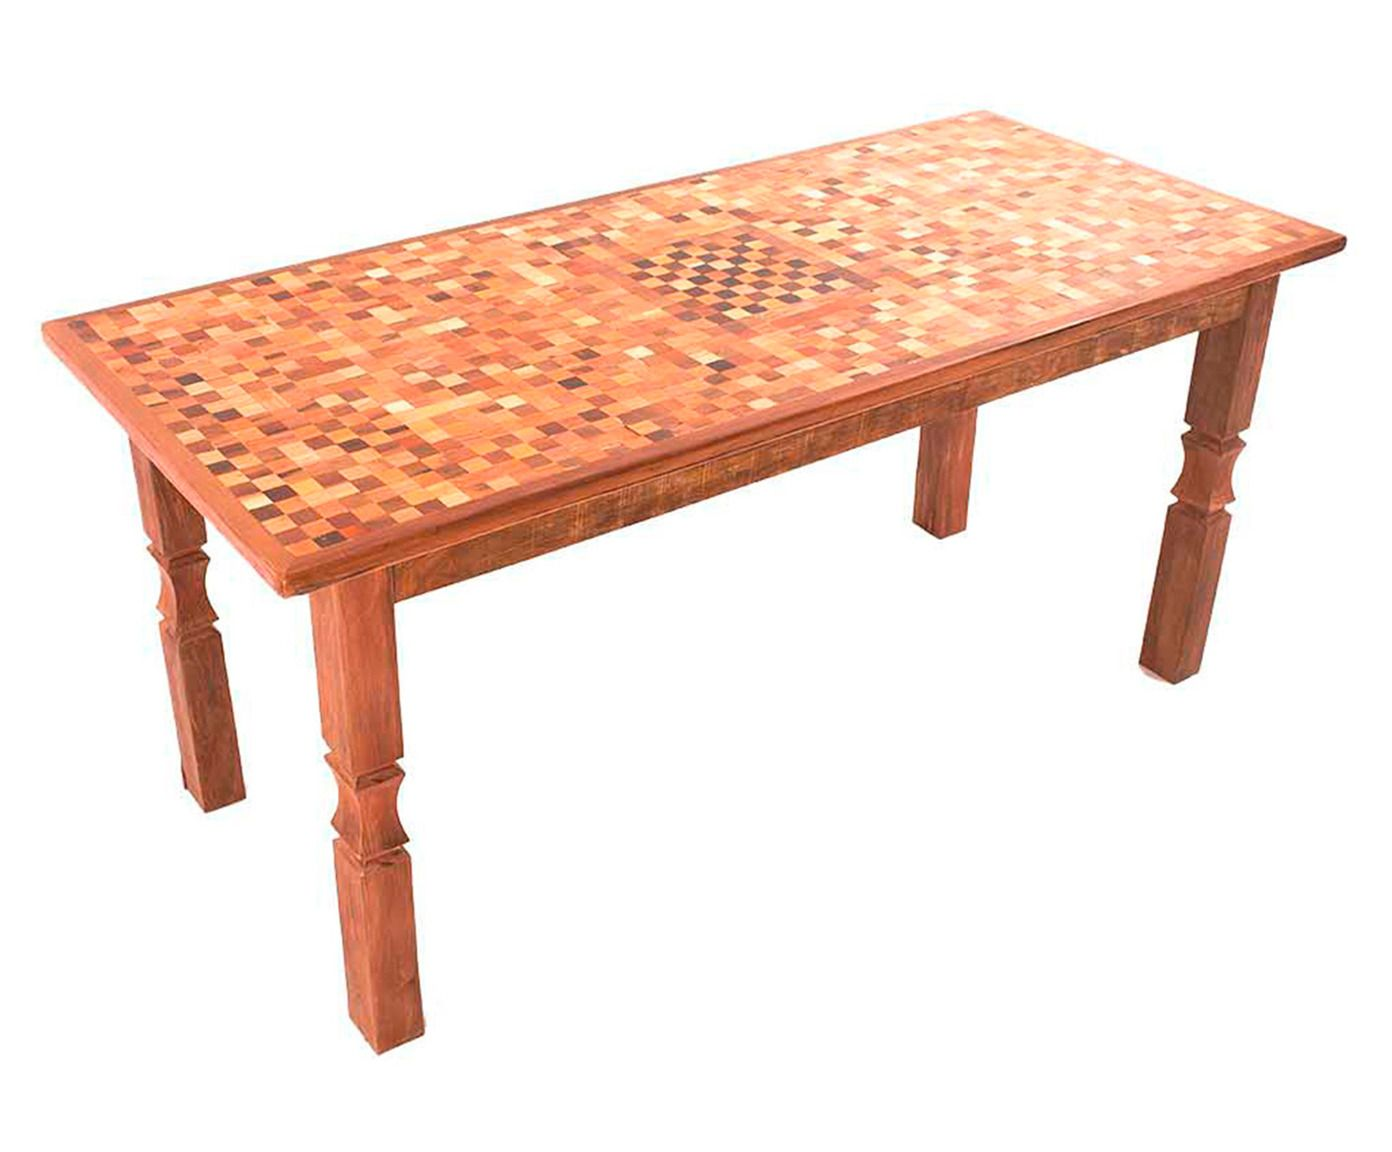 Mesa maia classic | Westwing.com.br